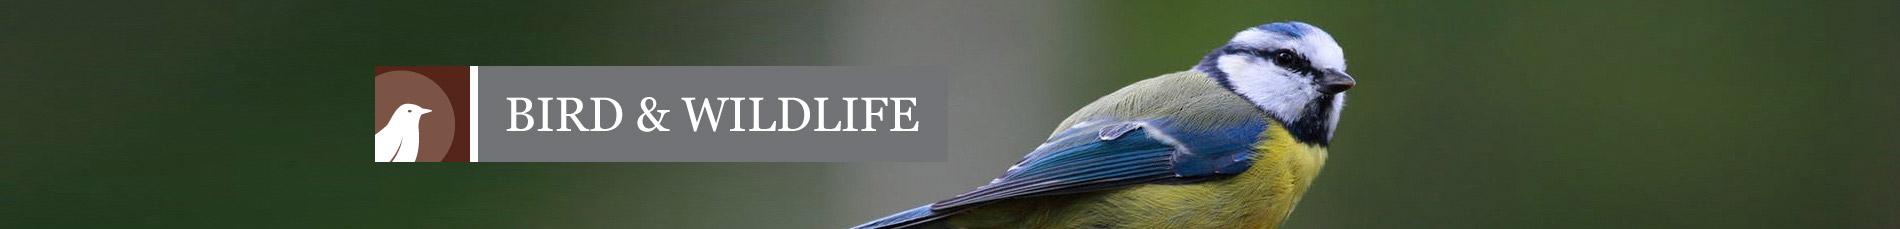 Bird & Wildlife Banner